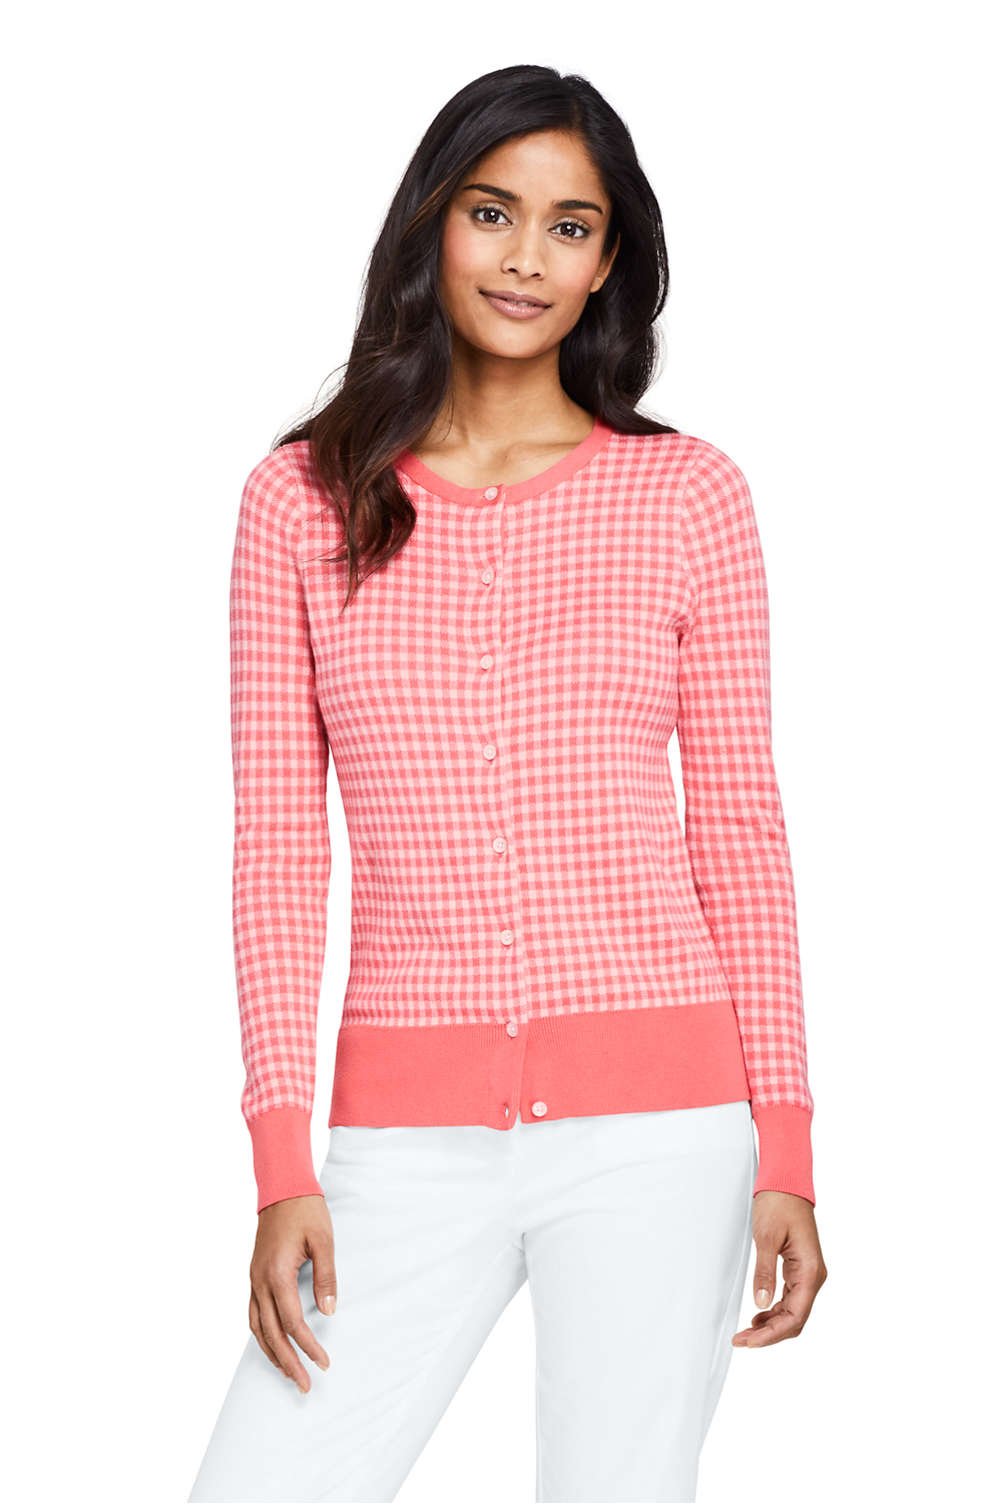 577ac3586edc Women's Supima Cotton Jacquard Cardigan Sweater from Lands' End